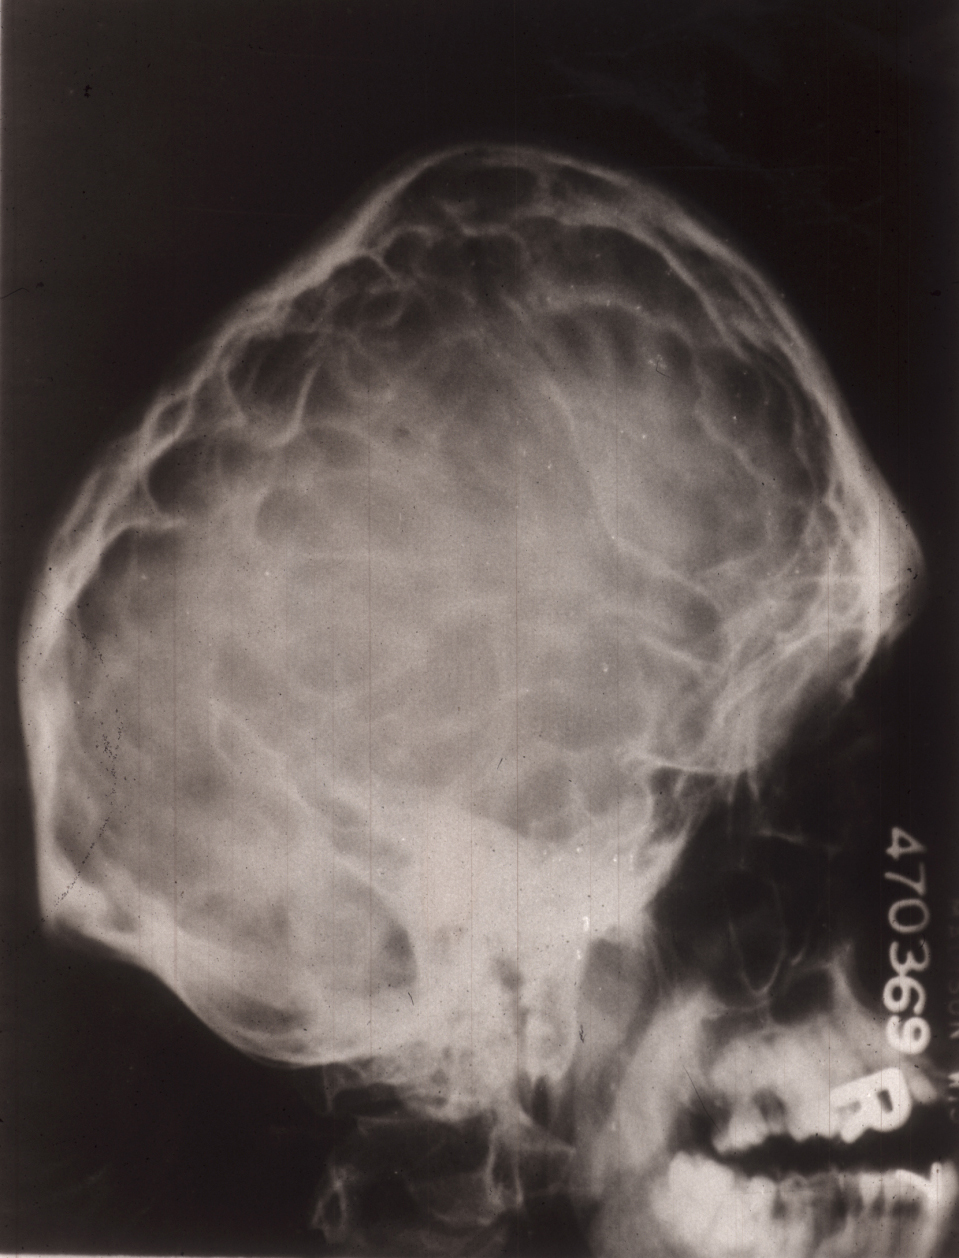 Skull X-ray of adult with Crouzon Syndrome